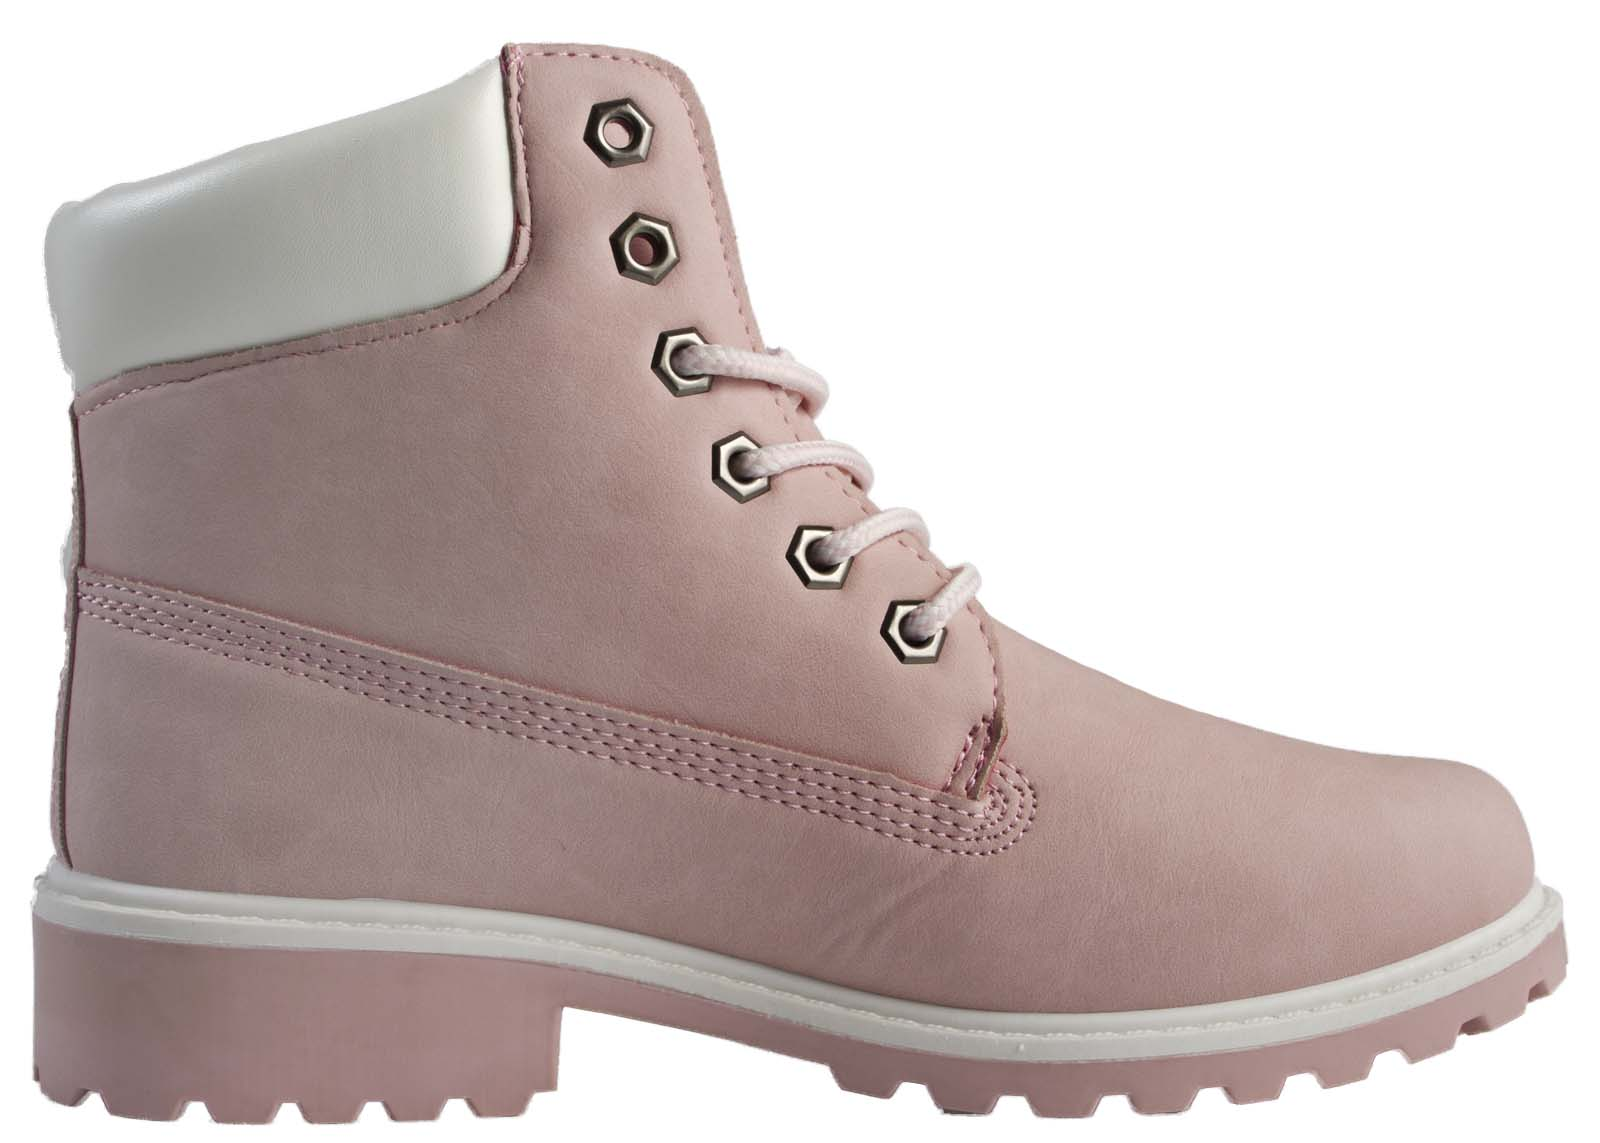 Details about Boys Girls Faux Leather Worker Ankle Boots Winter Military  Combat Shoes Size